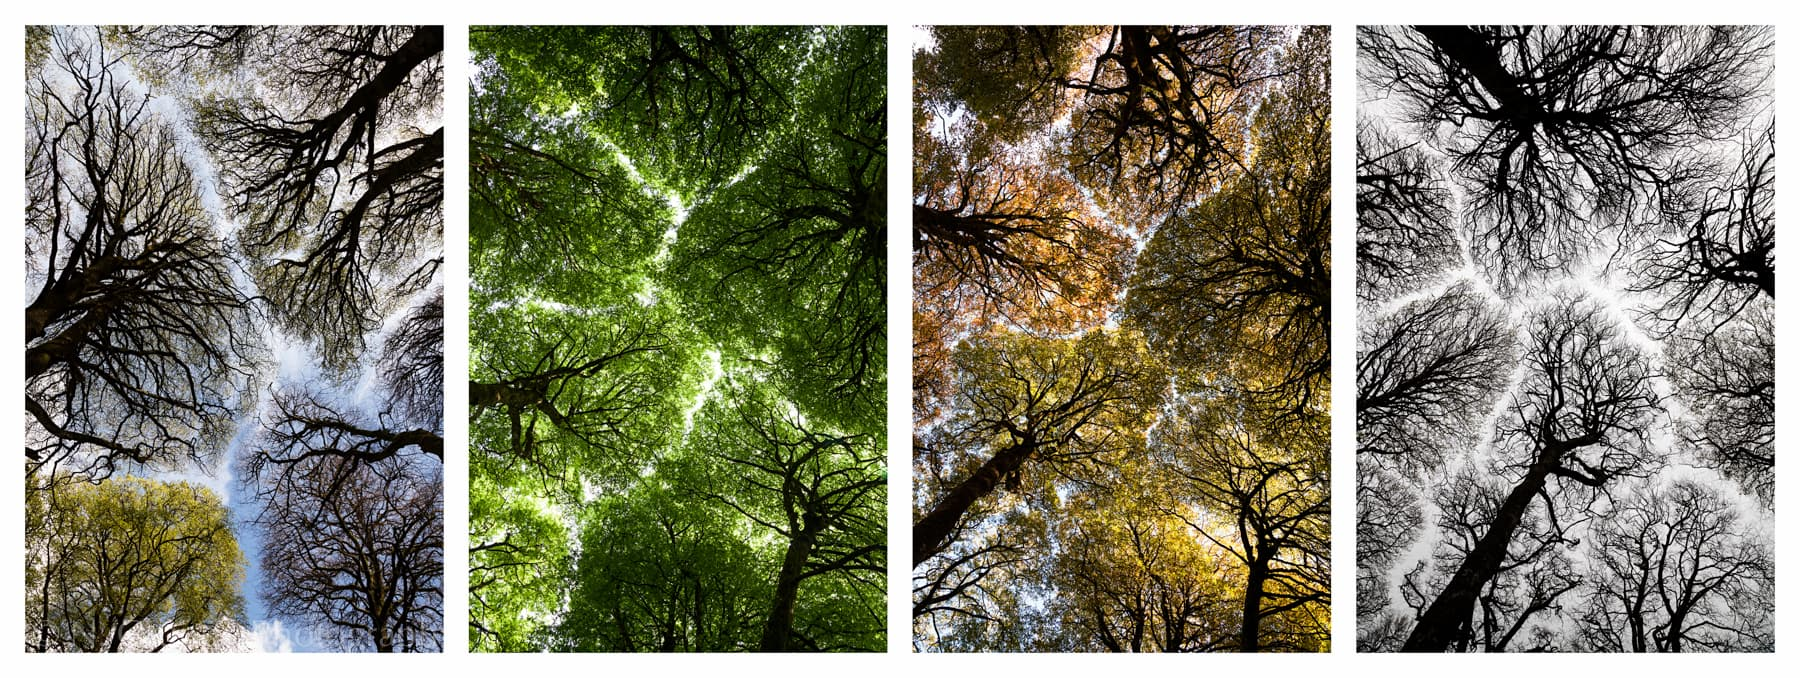 Photos of four seasons of crown shyness trees